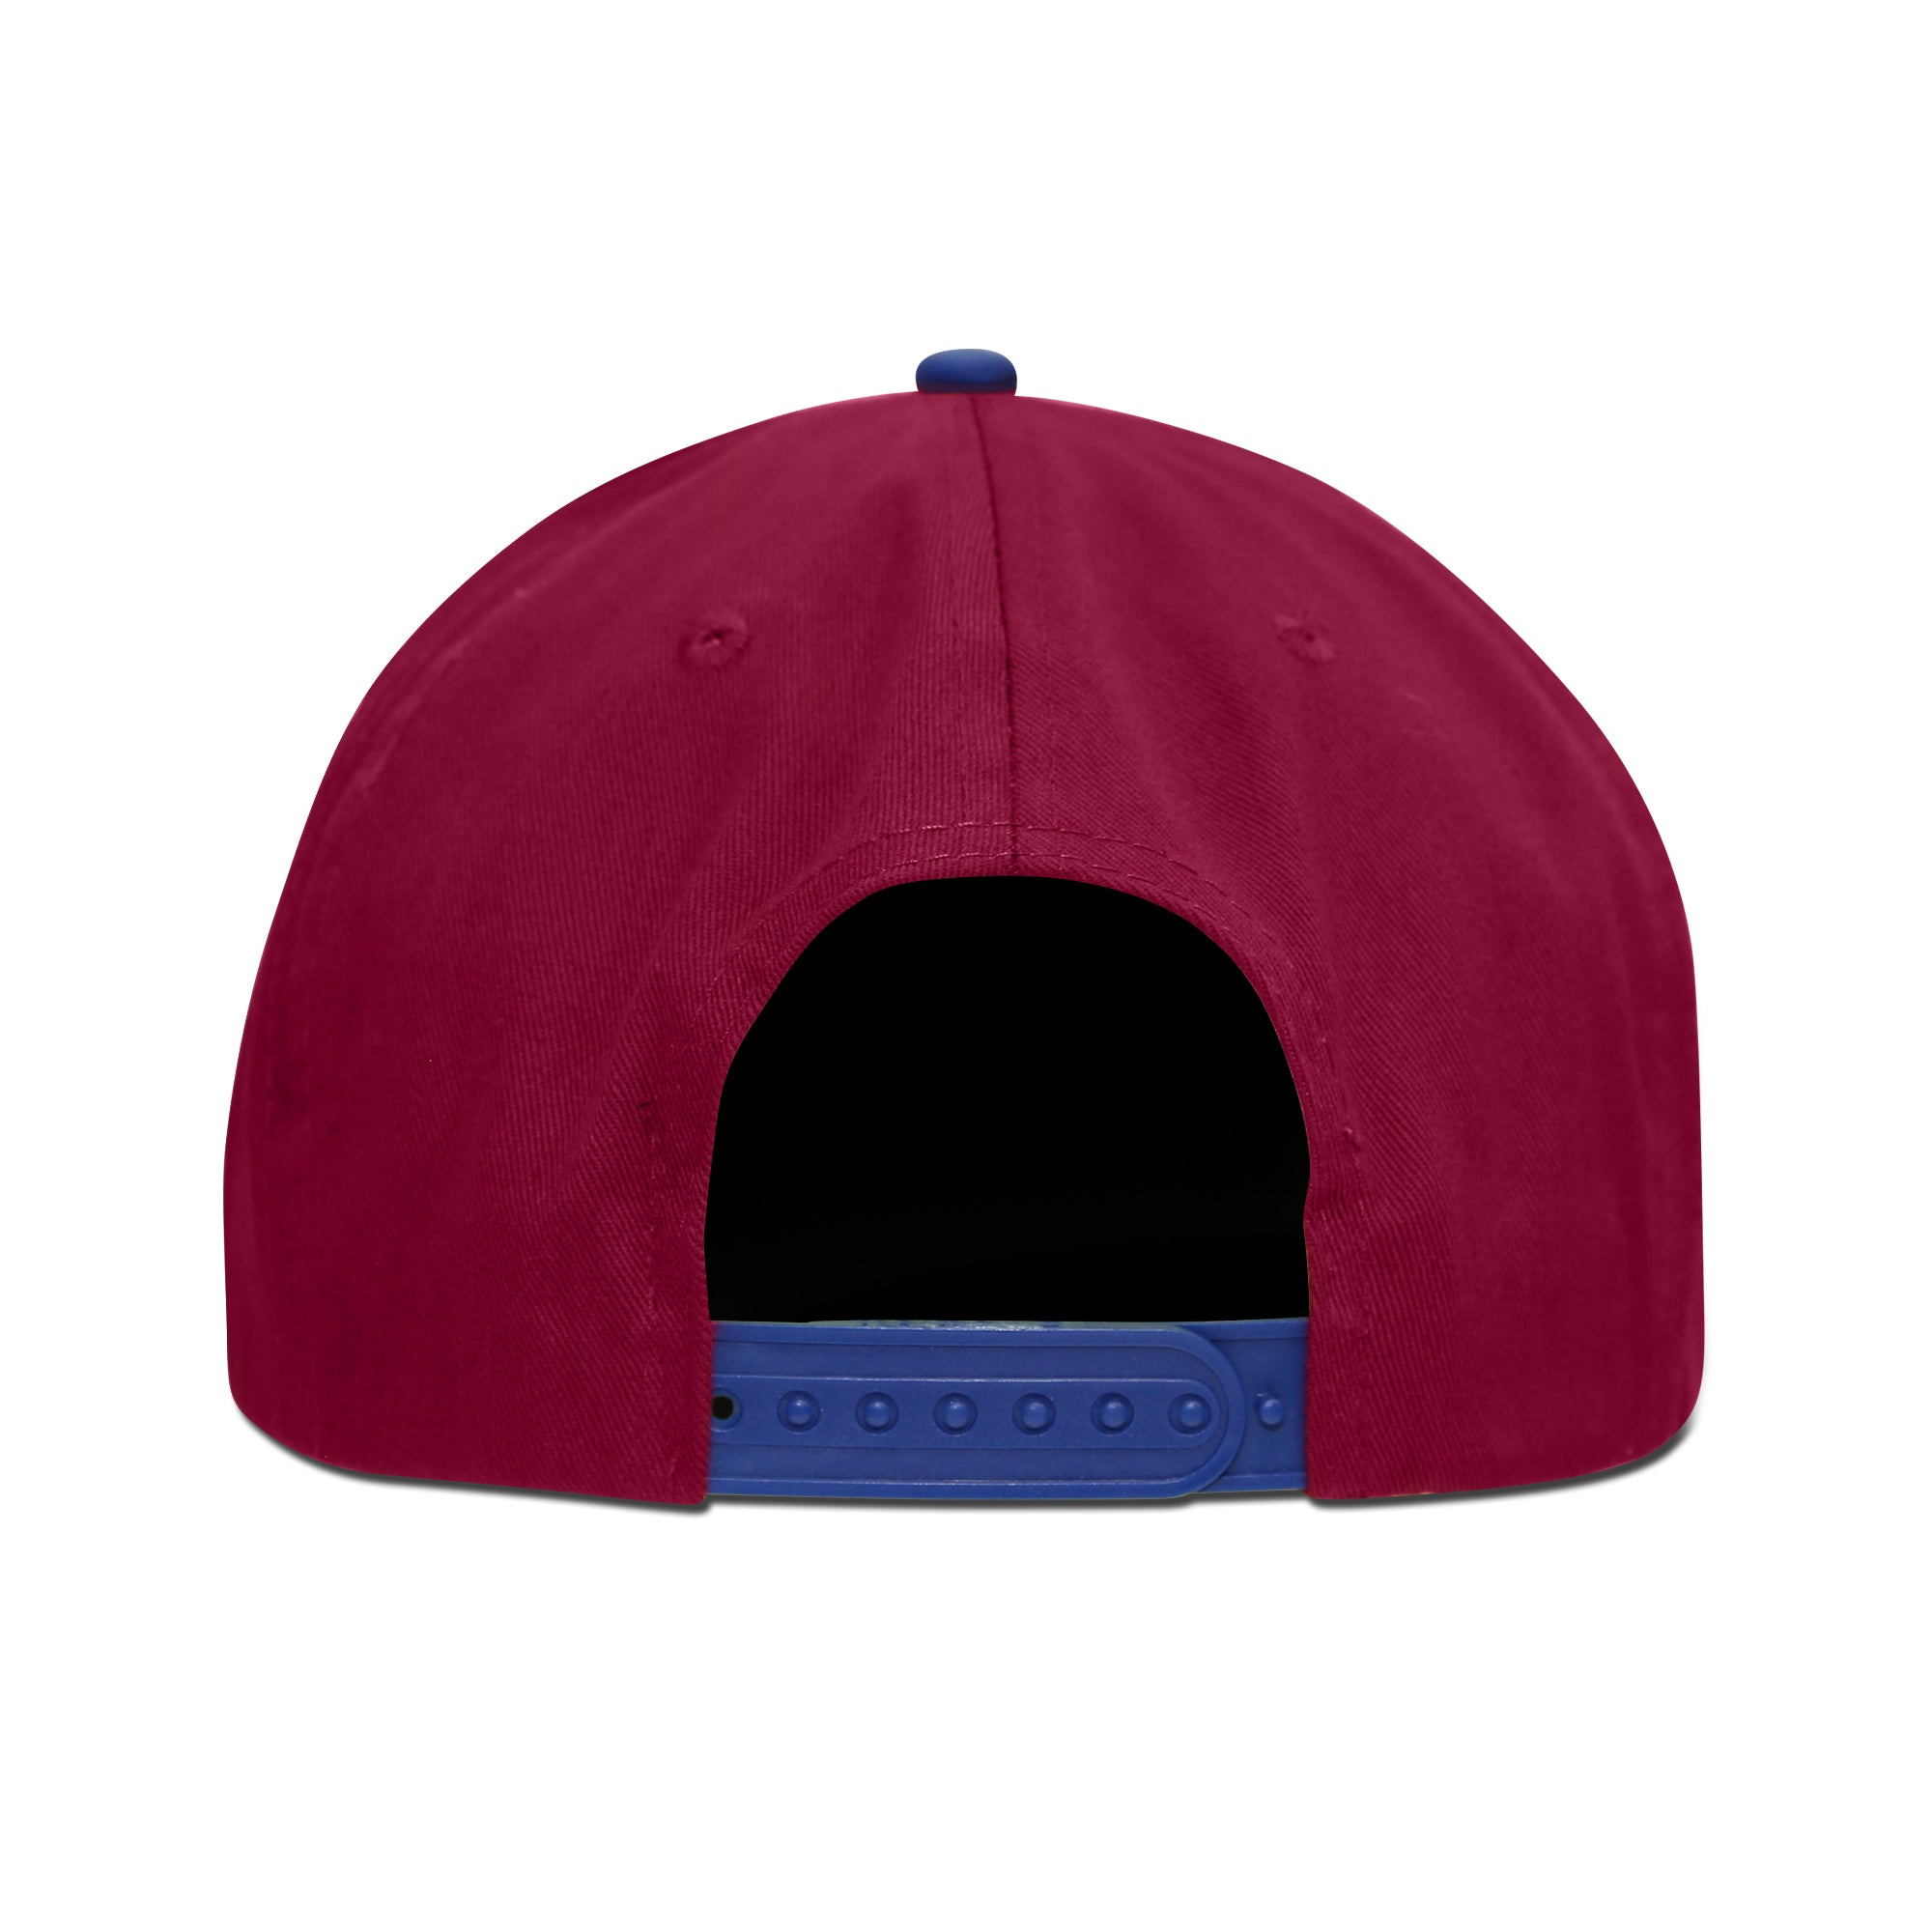 FC Barcelona Embroidered Logo 6 Panel Snapback - Burgundy/Royal by Icon Sports